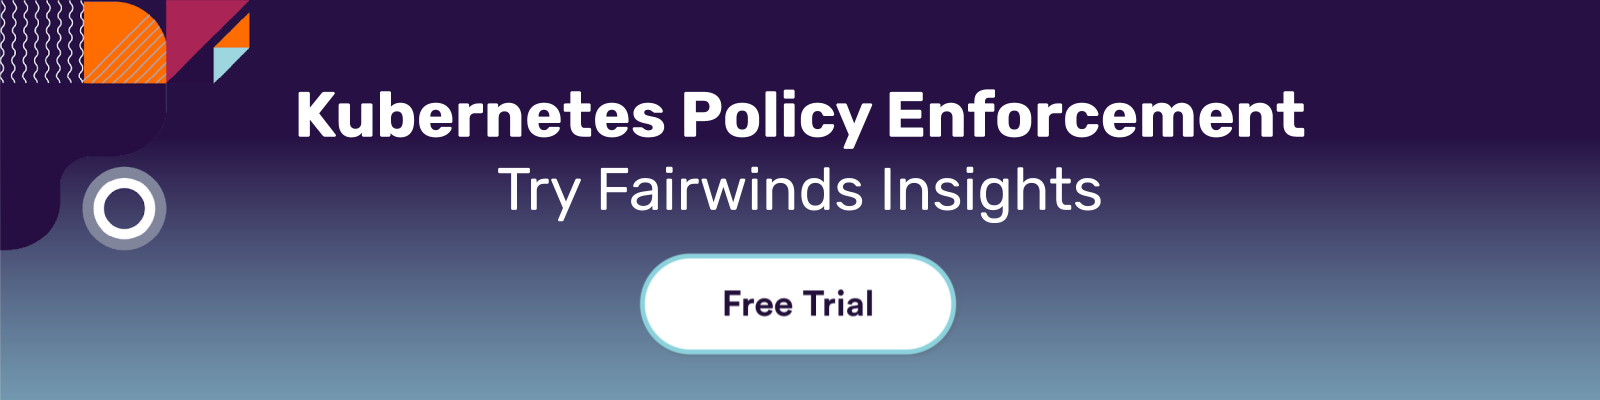 Kubernetes Policy Enforcement Fairwinds Insights